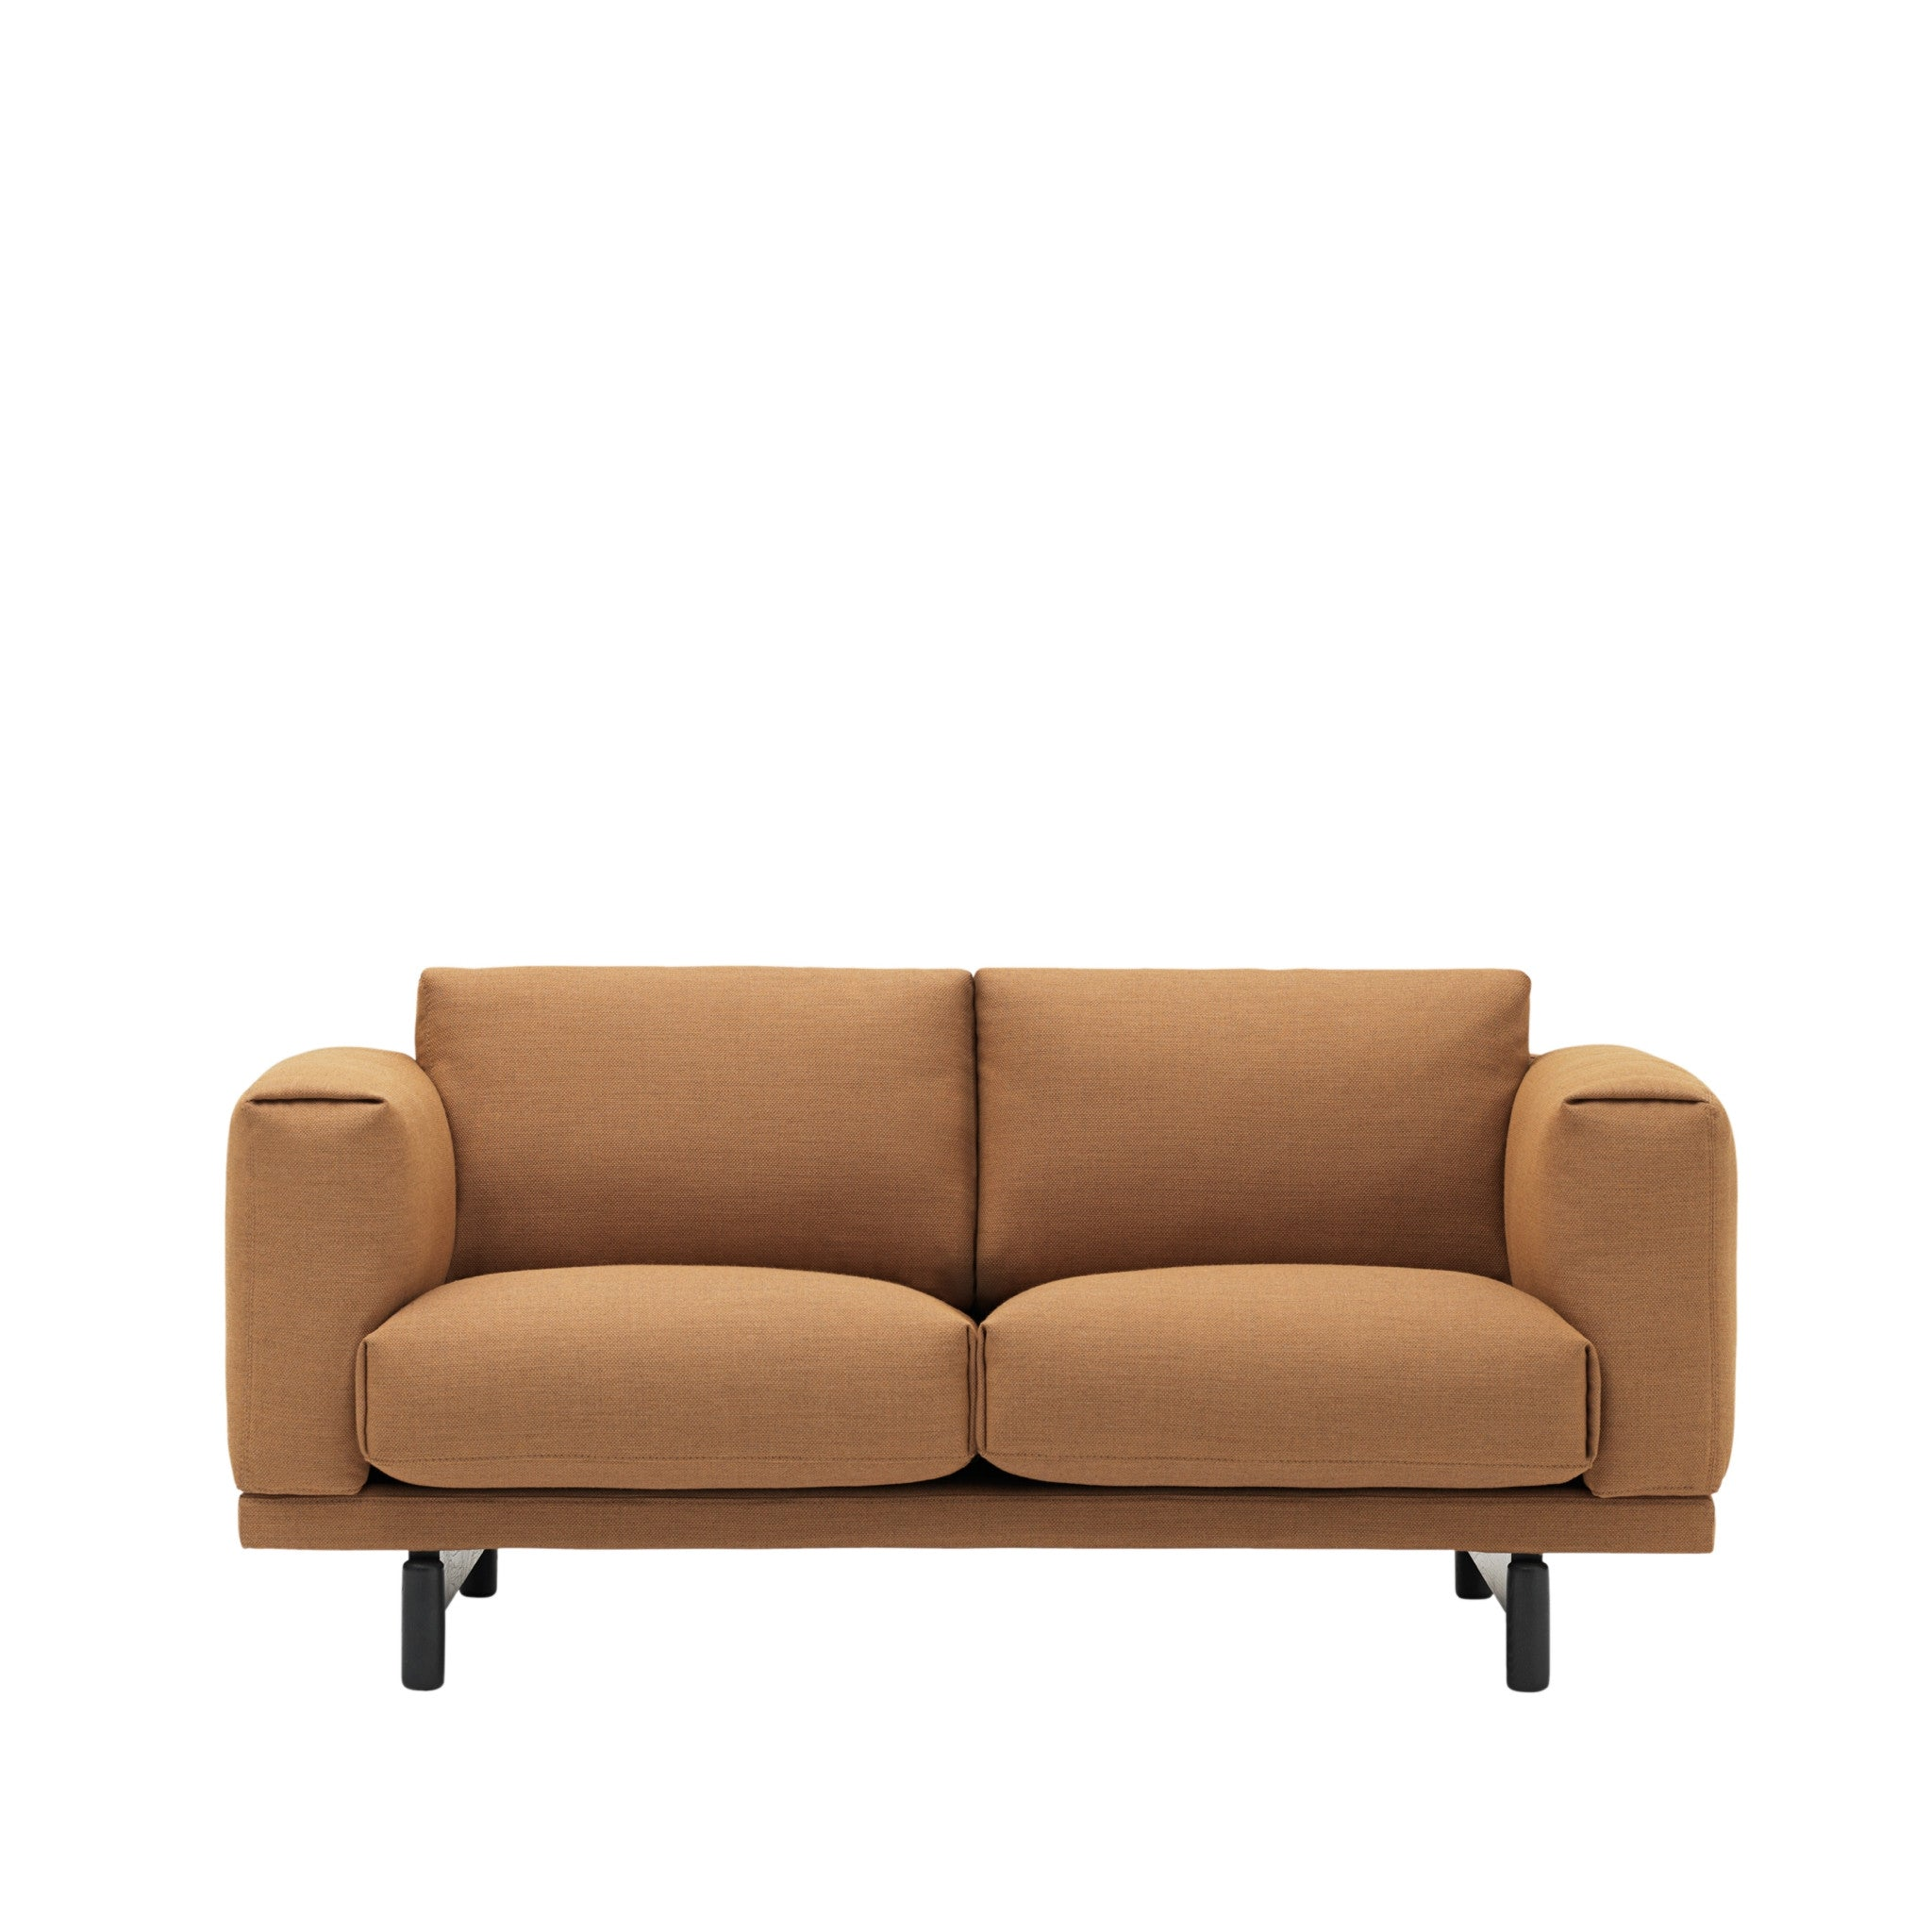 muuto sofa bed leather tapestry rest studio by  haus